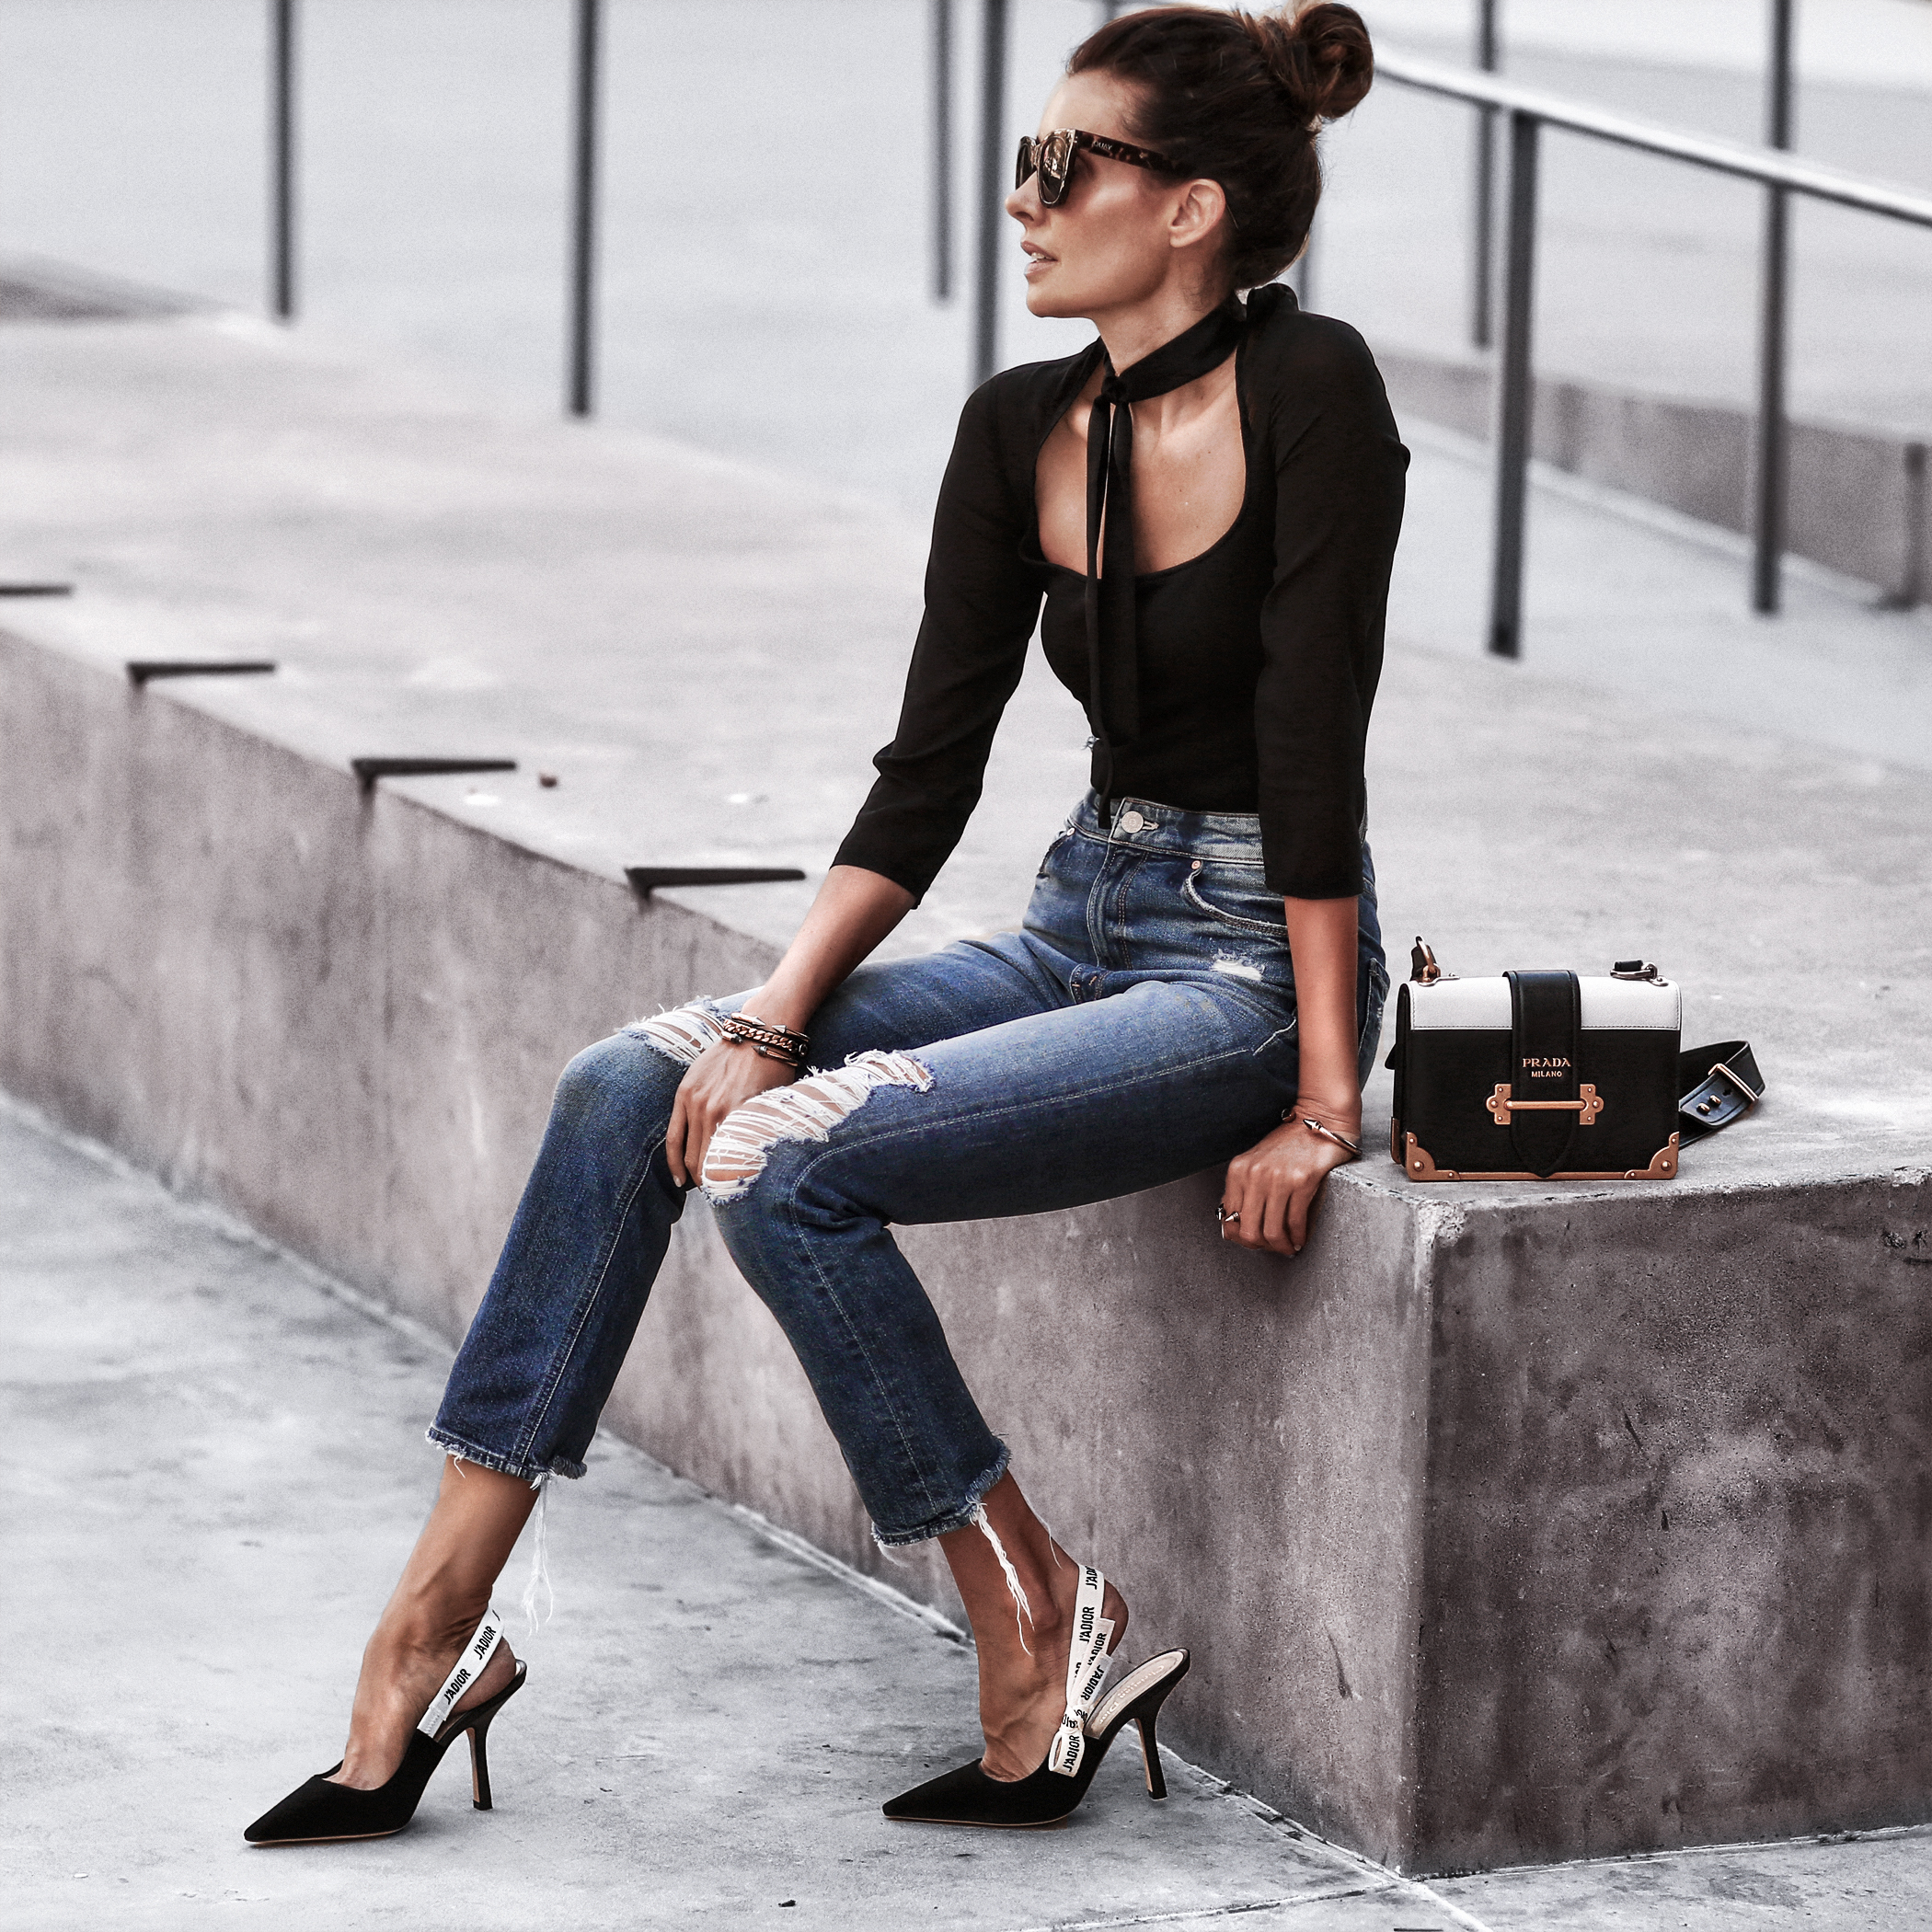 ballerina bodysuit with neck tie, high waisted distressed jeans, dior pumps, prada bag